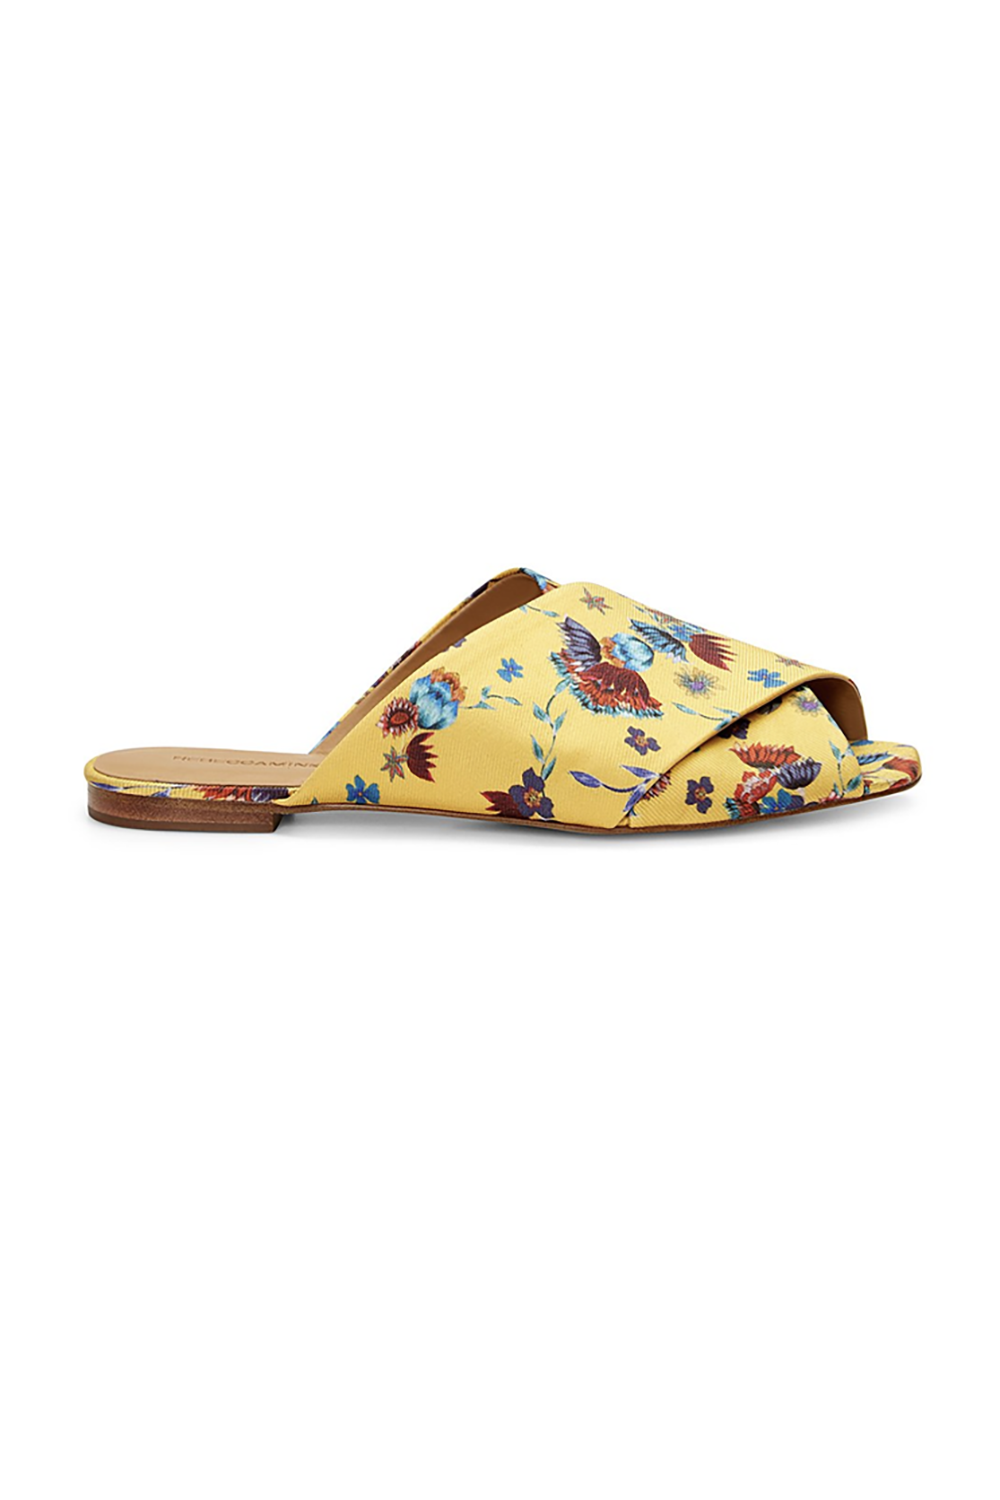 Sunshine in a Shoe Rebecca Minkoff, $50 SHOP IT Florals for spring may not be groundbreaking, but they are necessary. And, hey, if you're not a pattern girl, footwear is the perfect place to ease them into your wardrobe.